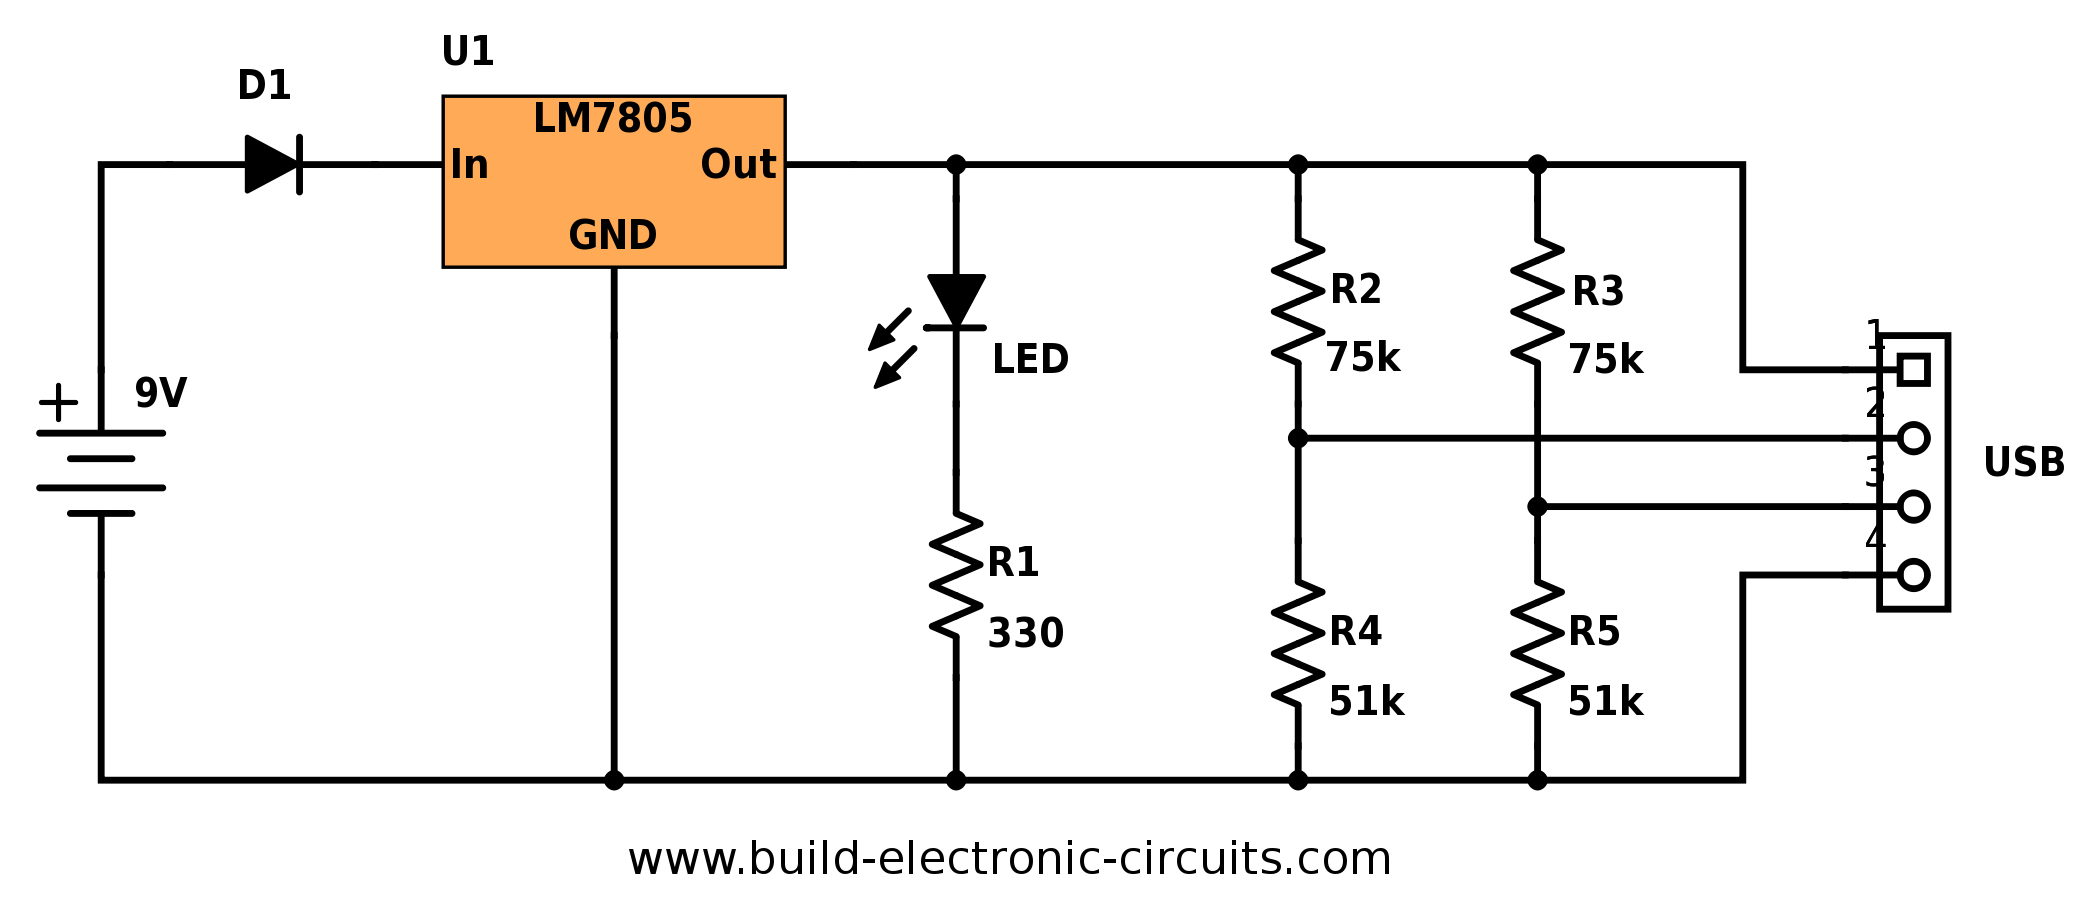 Portable Usb Charger Wiring Diagram - Best Secret Wiring Diagram • - Circuit Diagram Of Usb Charger Wiring